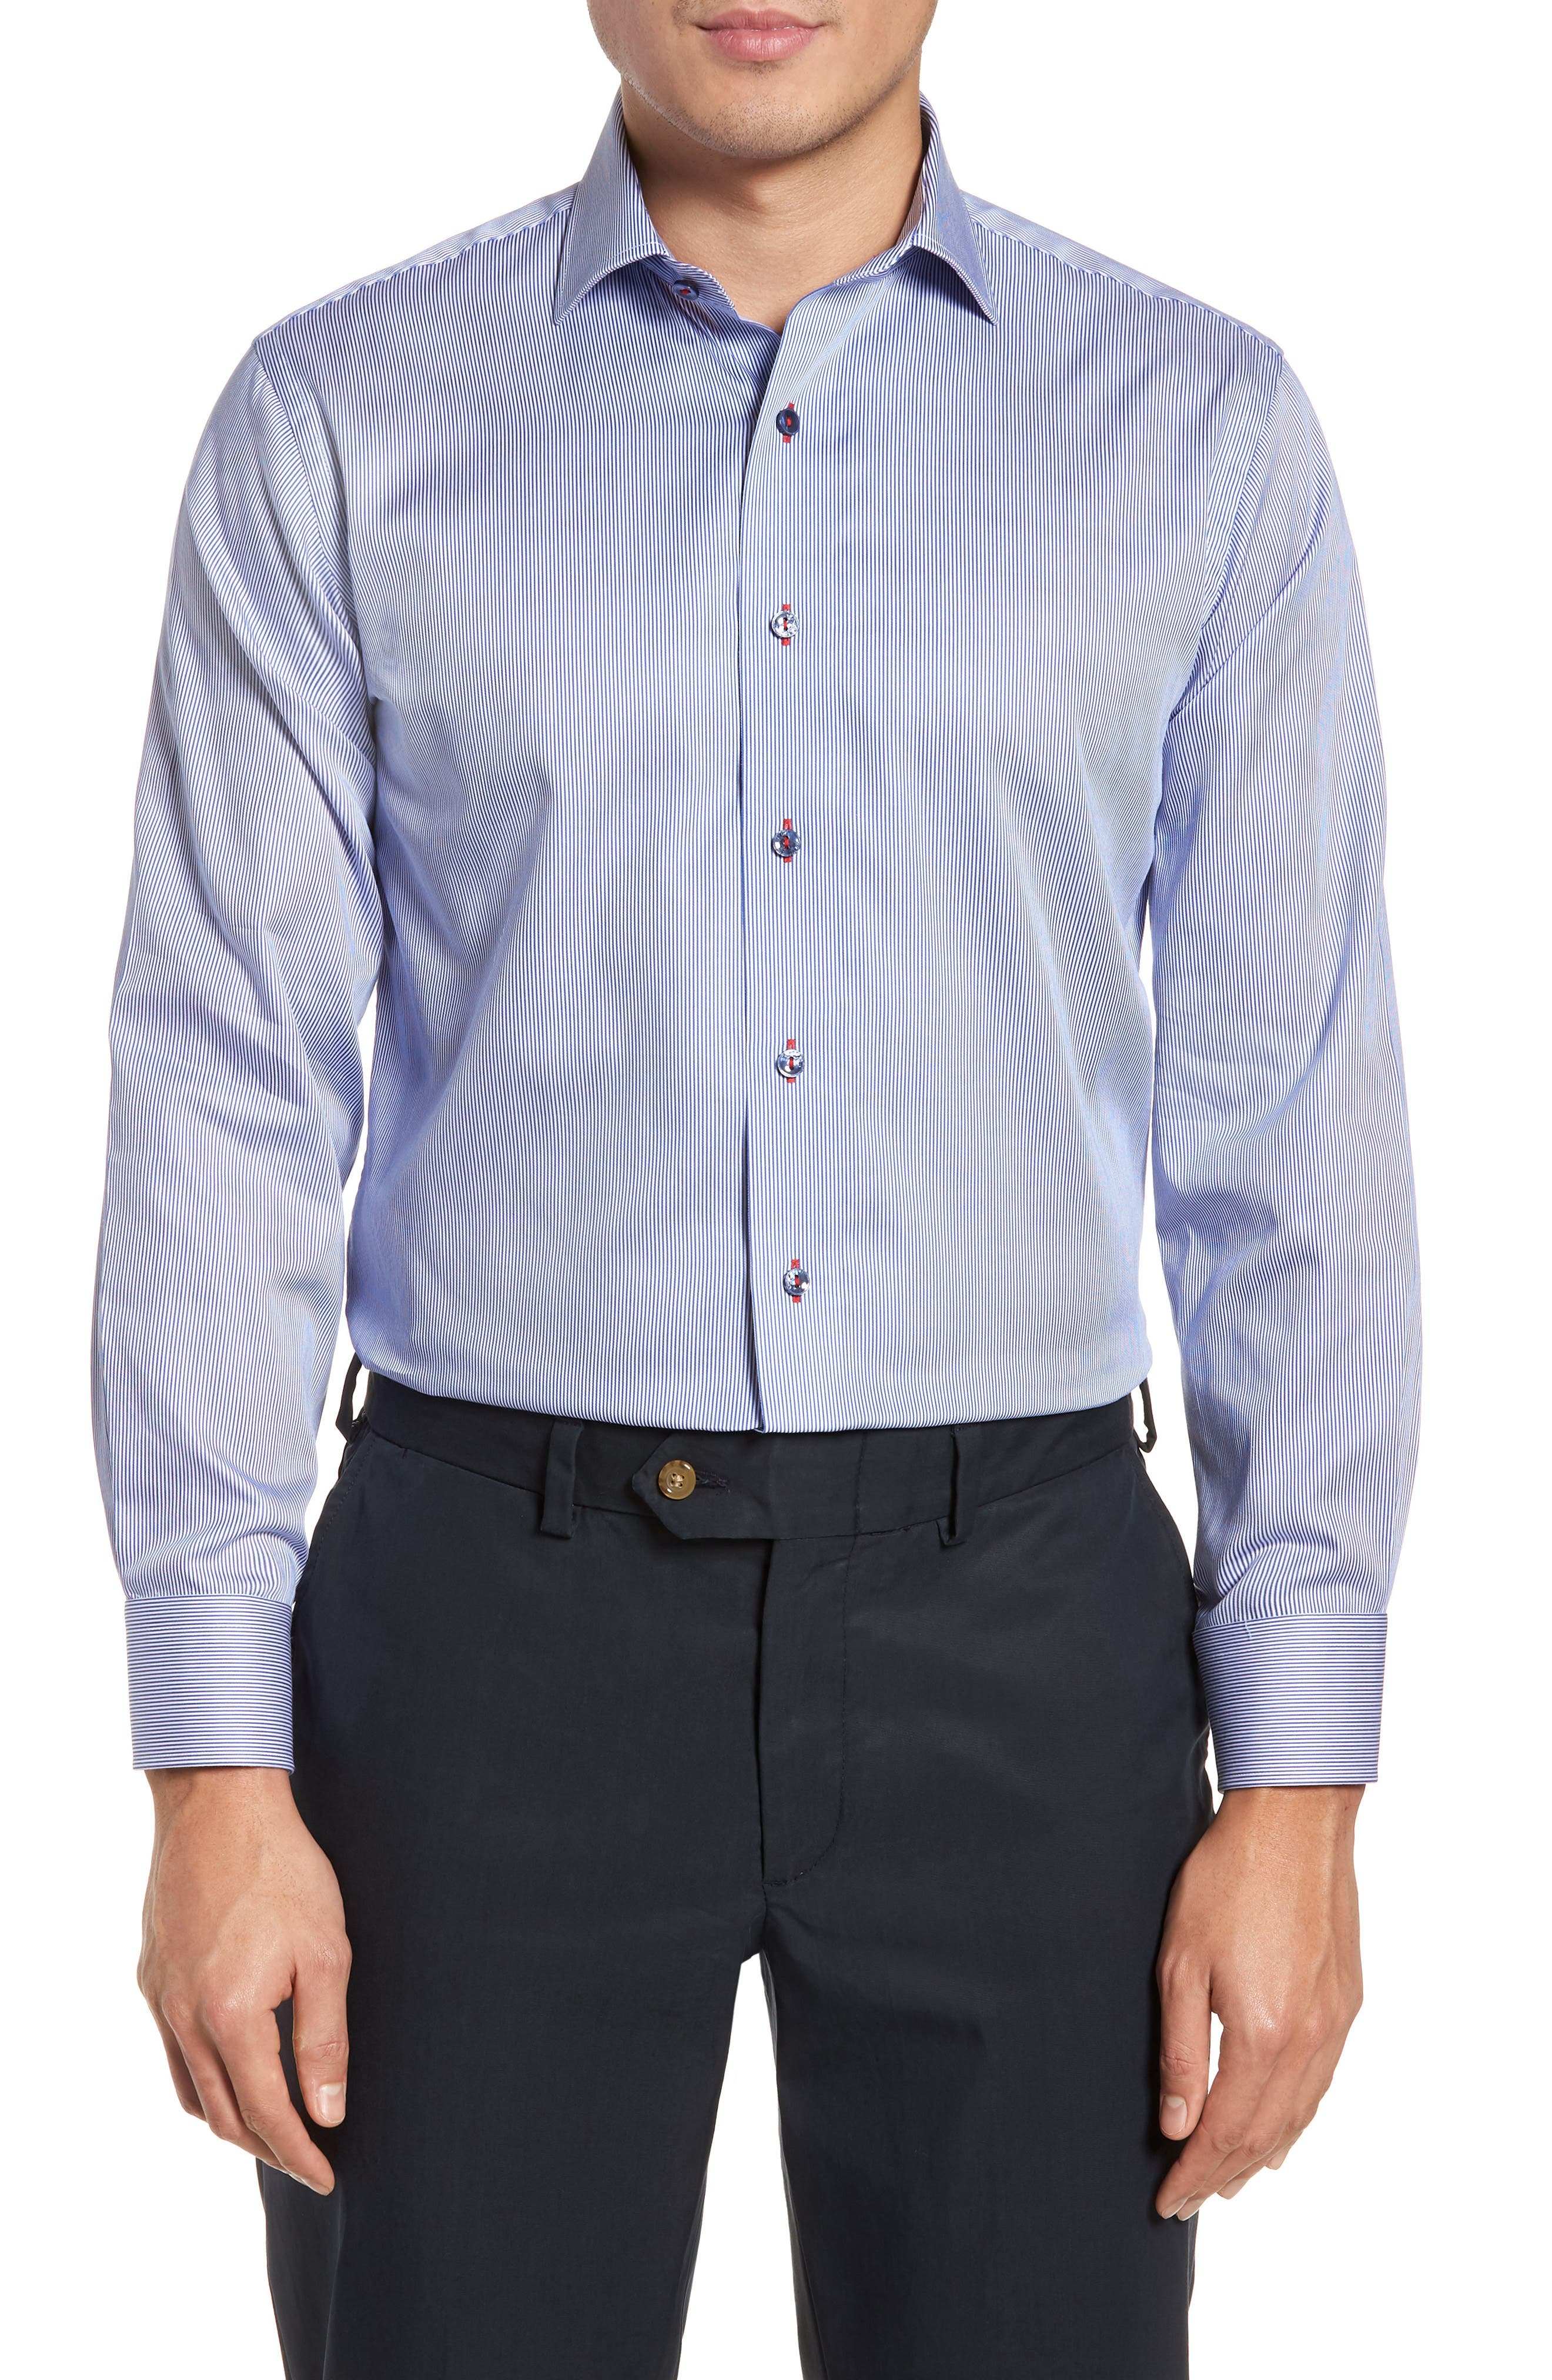 Trim Fit Textured Stripe Dress Shirt,                         Main,                         color, Navy/ White